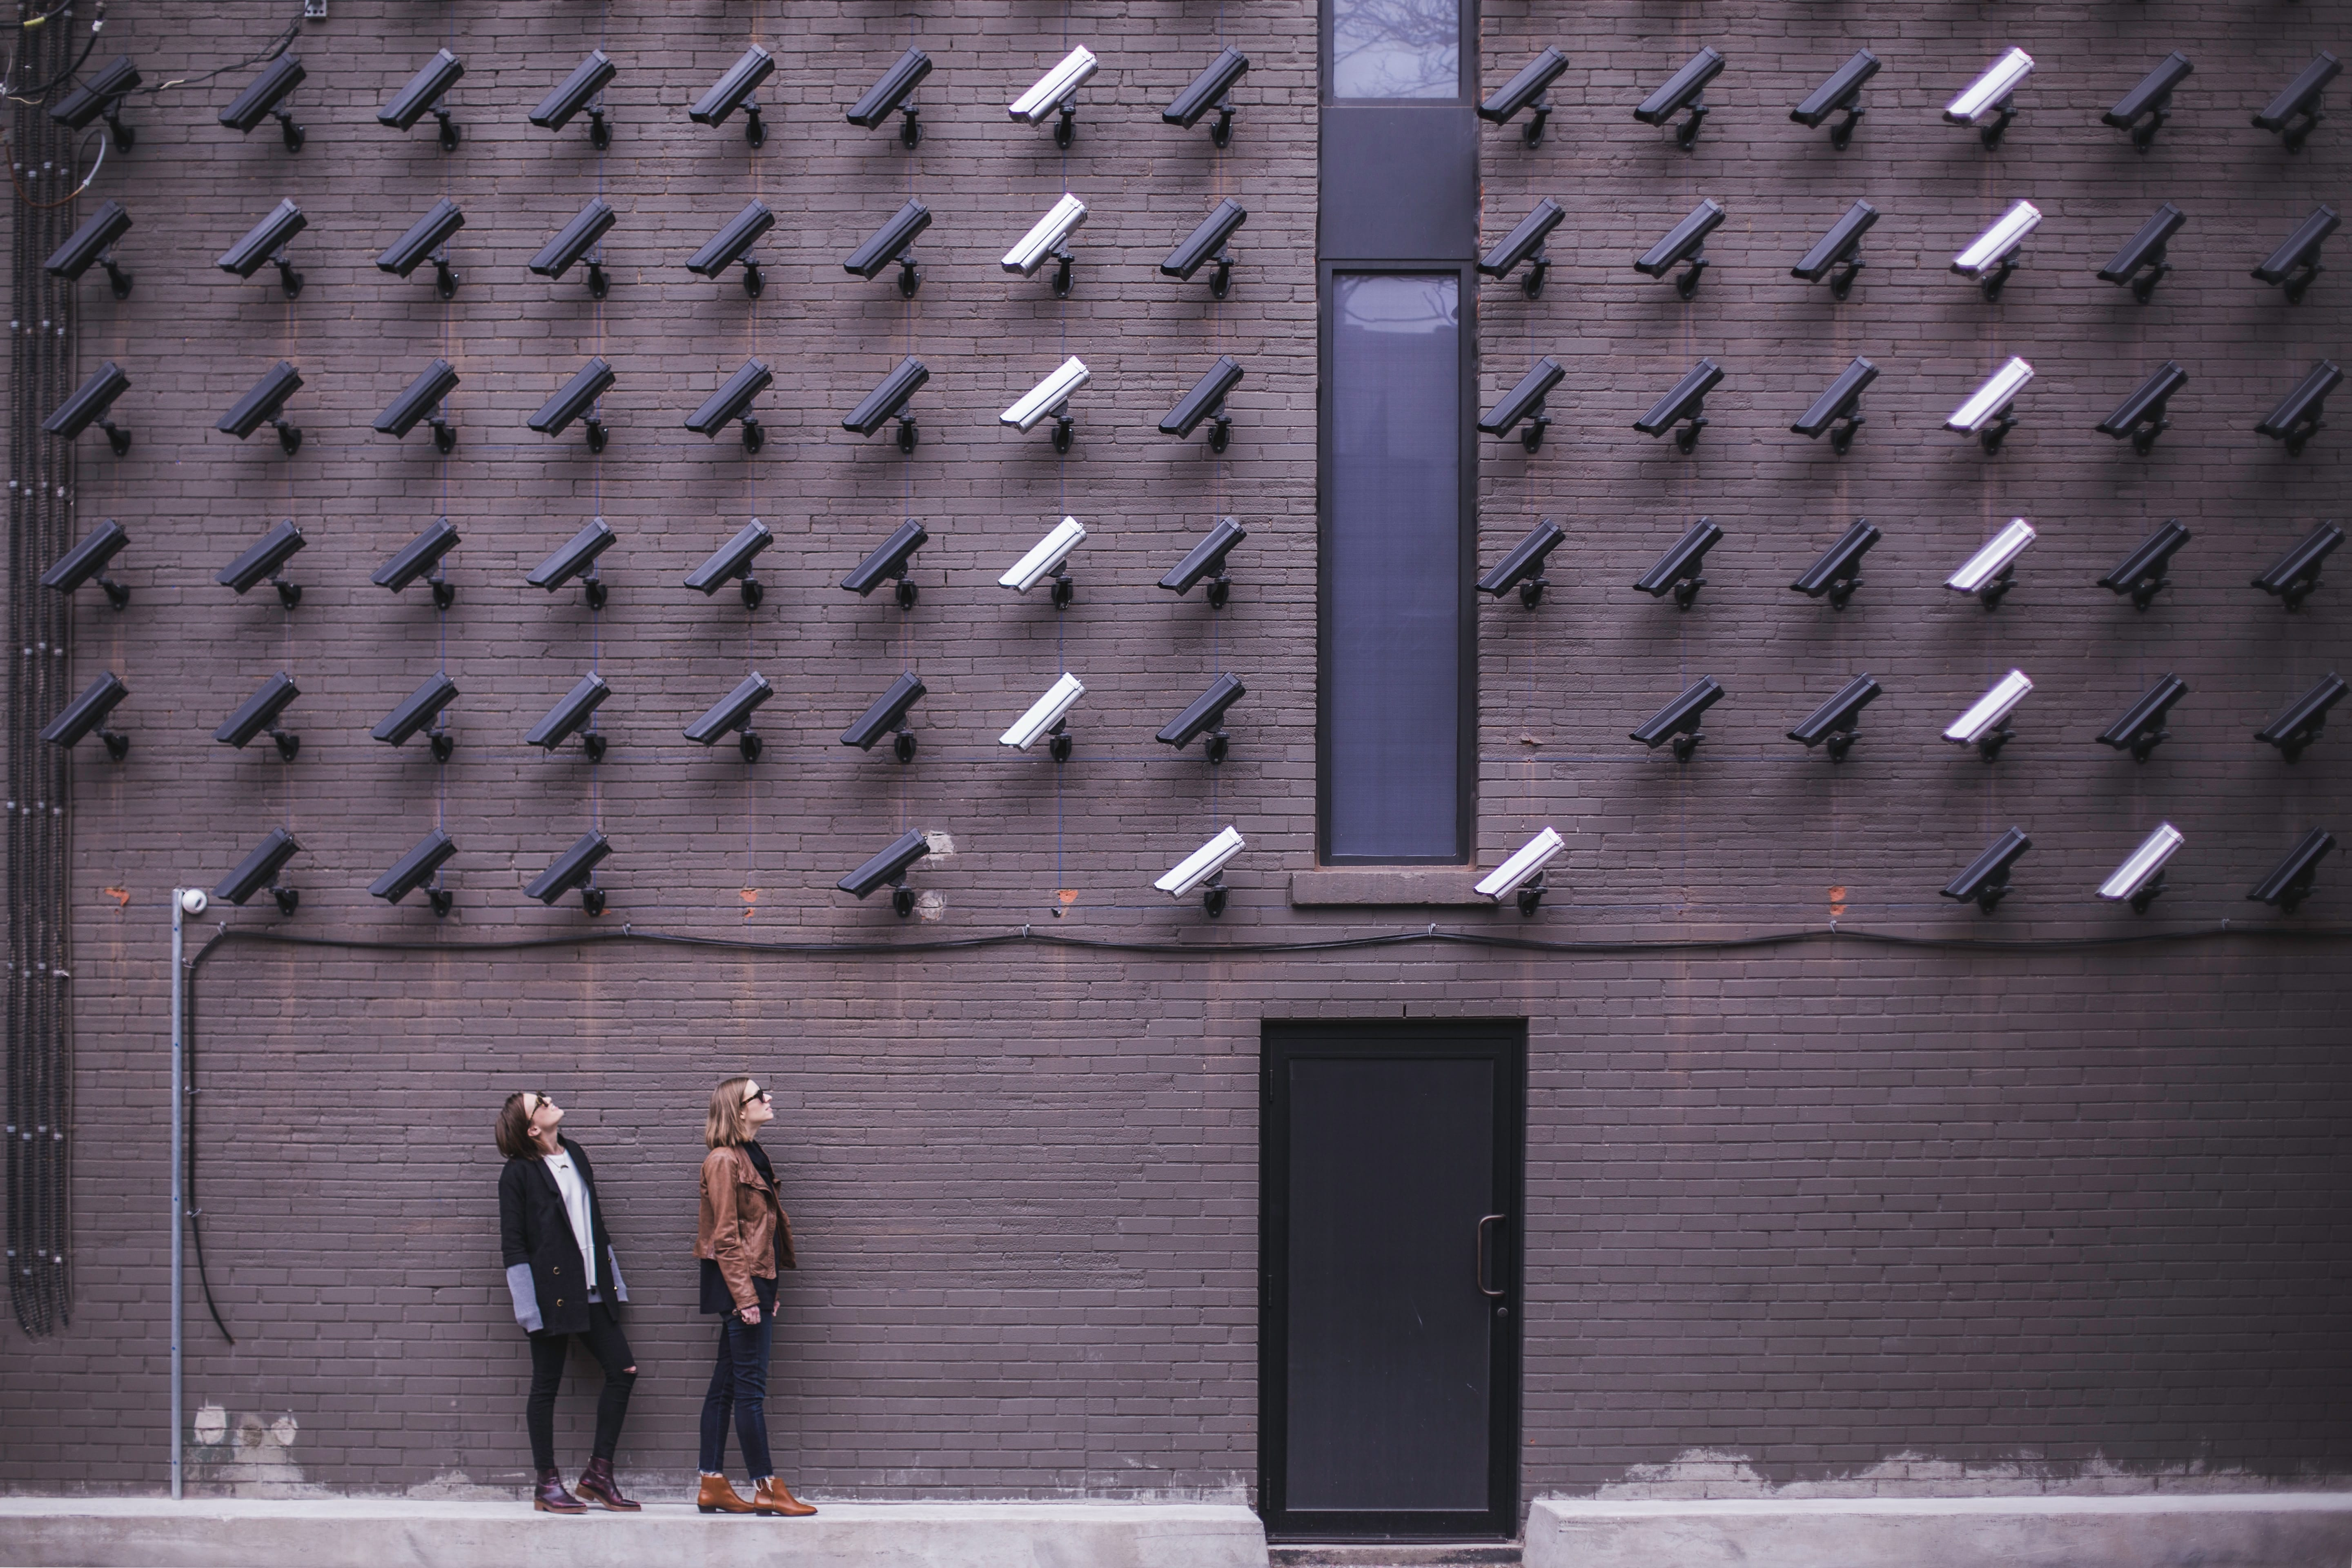 Two women facing security cameras mounted on structure above; image by Matthew Henry, via Unsplash.com.